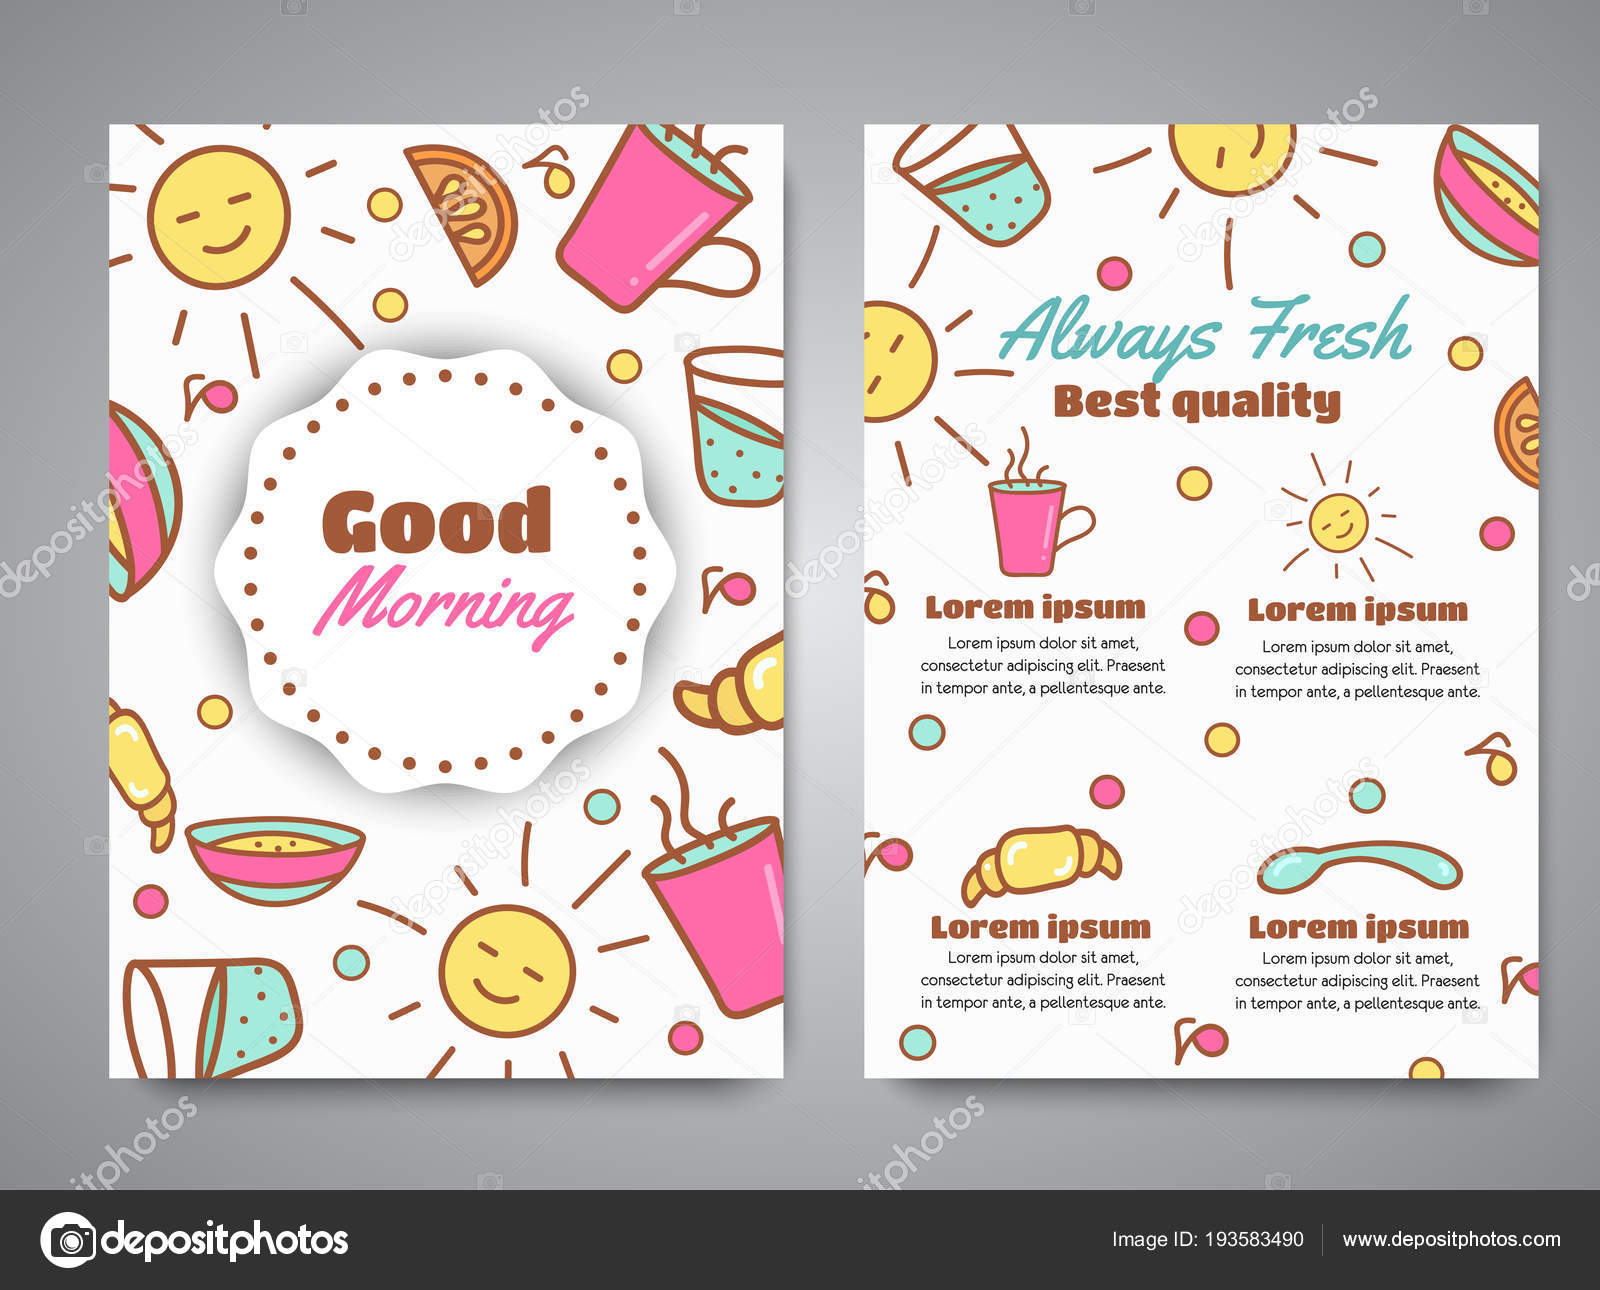 Good Morning Slogan On Brochure Breakfast Menu For Cafe Illustration Always Fresh Text Cafe Bakery Concept Coffeee And Tea Time Vector Stock Vector C Kamimi 193583490